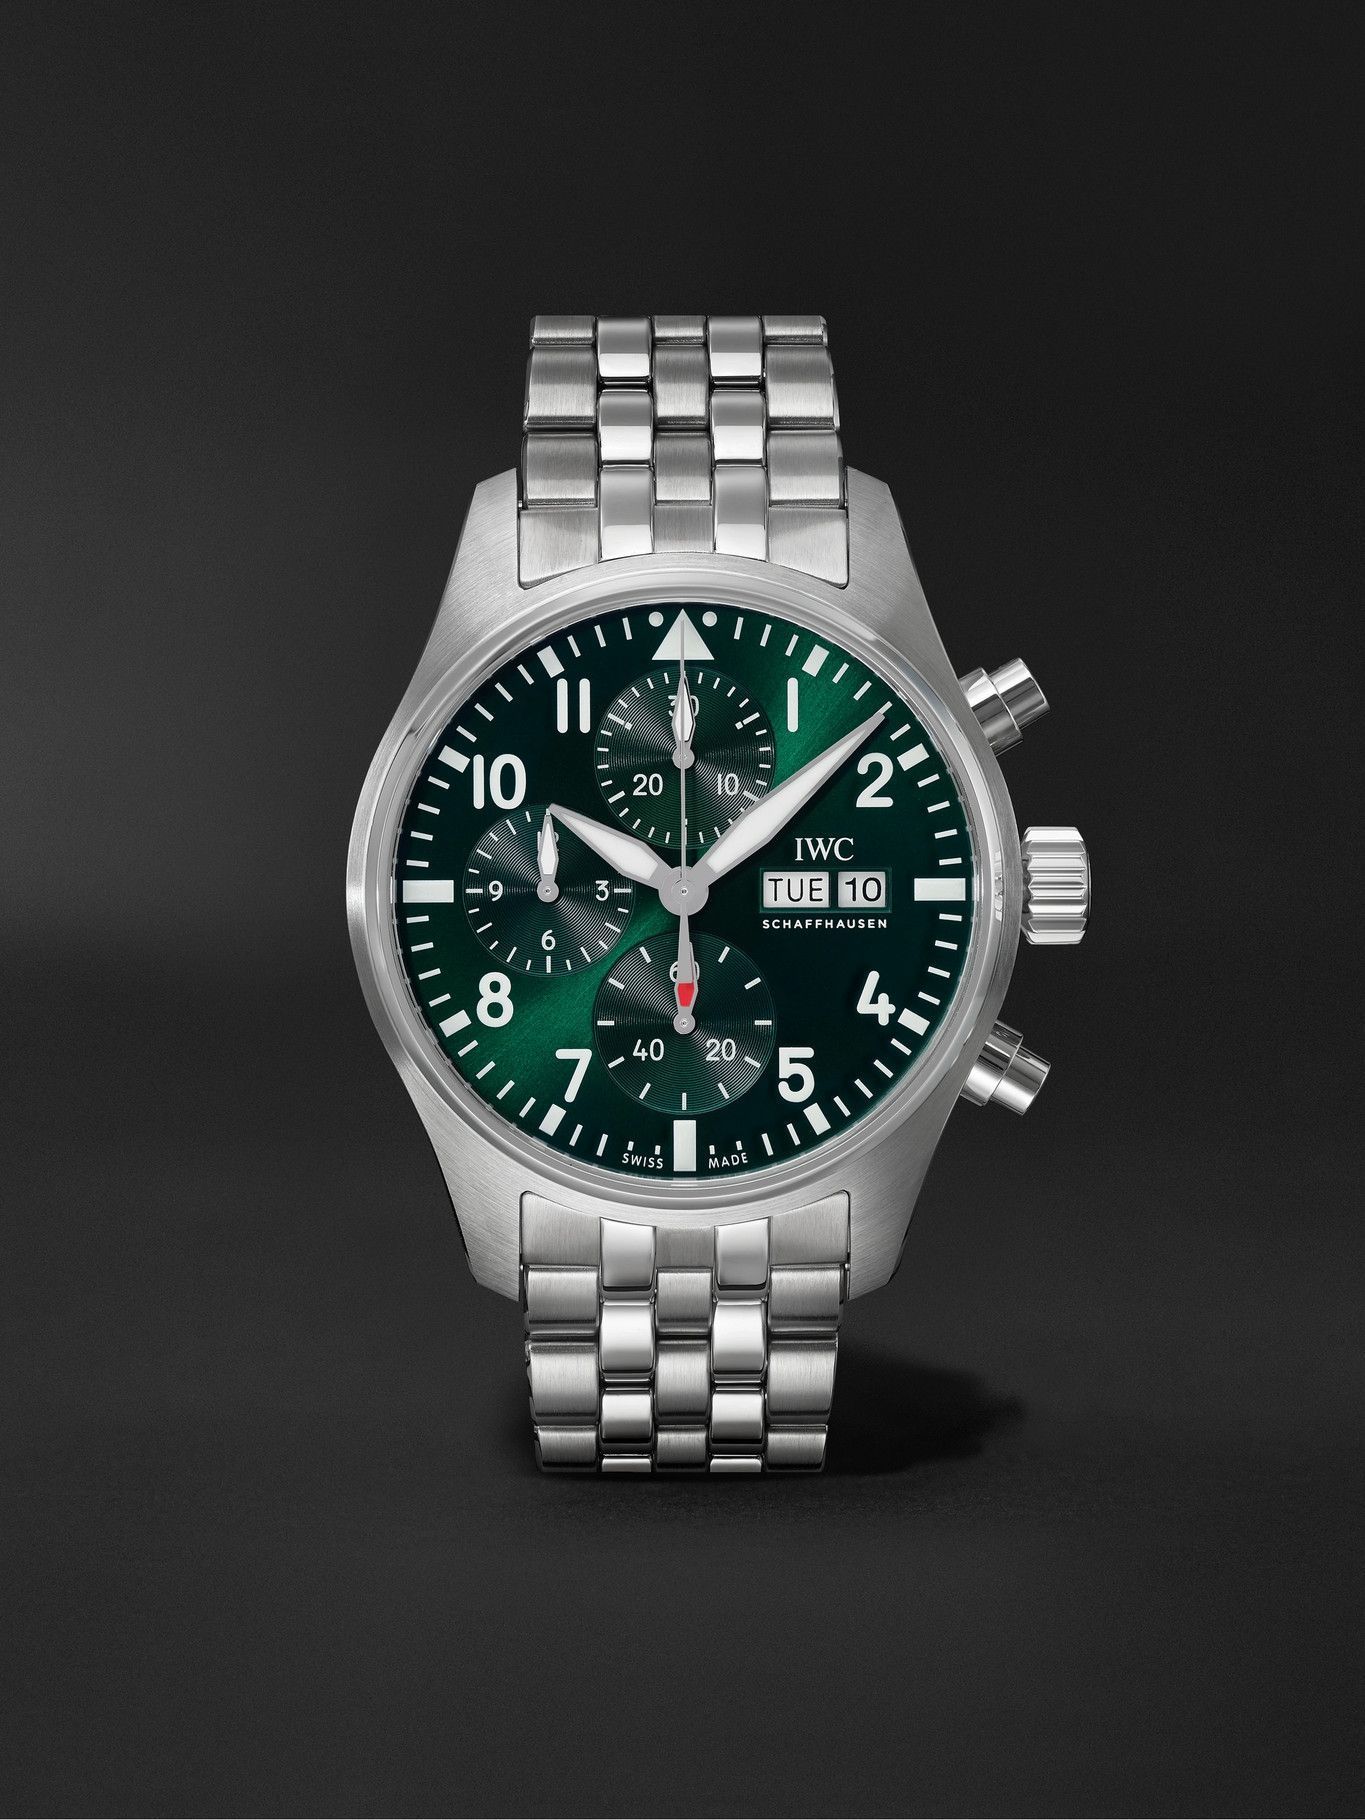 Photo: IWC Schaffhausen - Pilot's Automatic Chronograph 41mm Stainless Steel Watch, Ref. No. IW388104